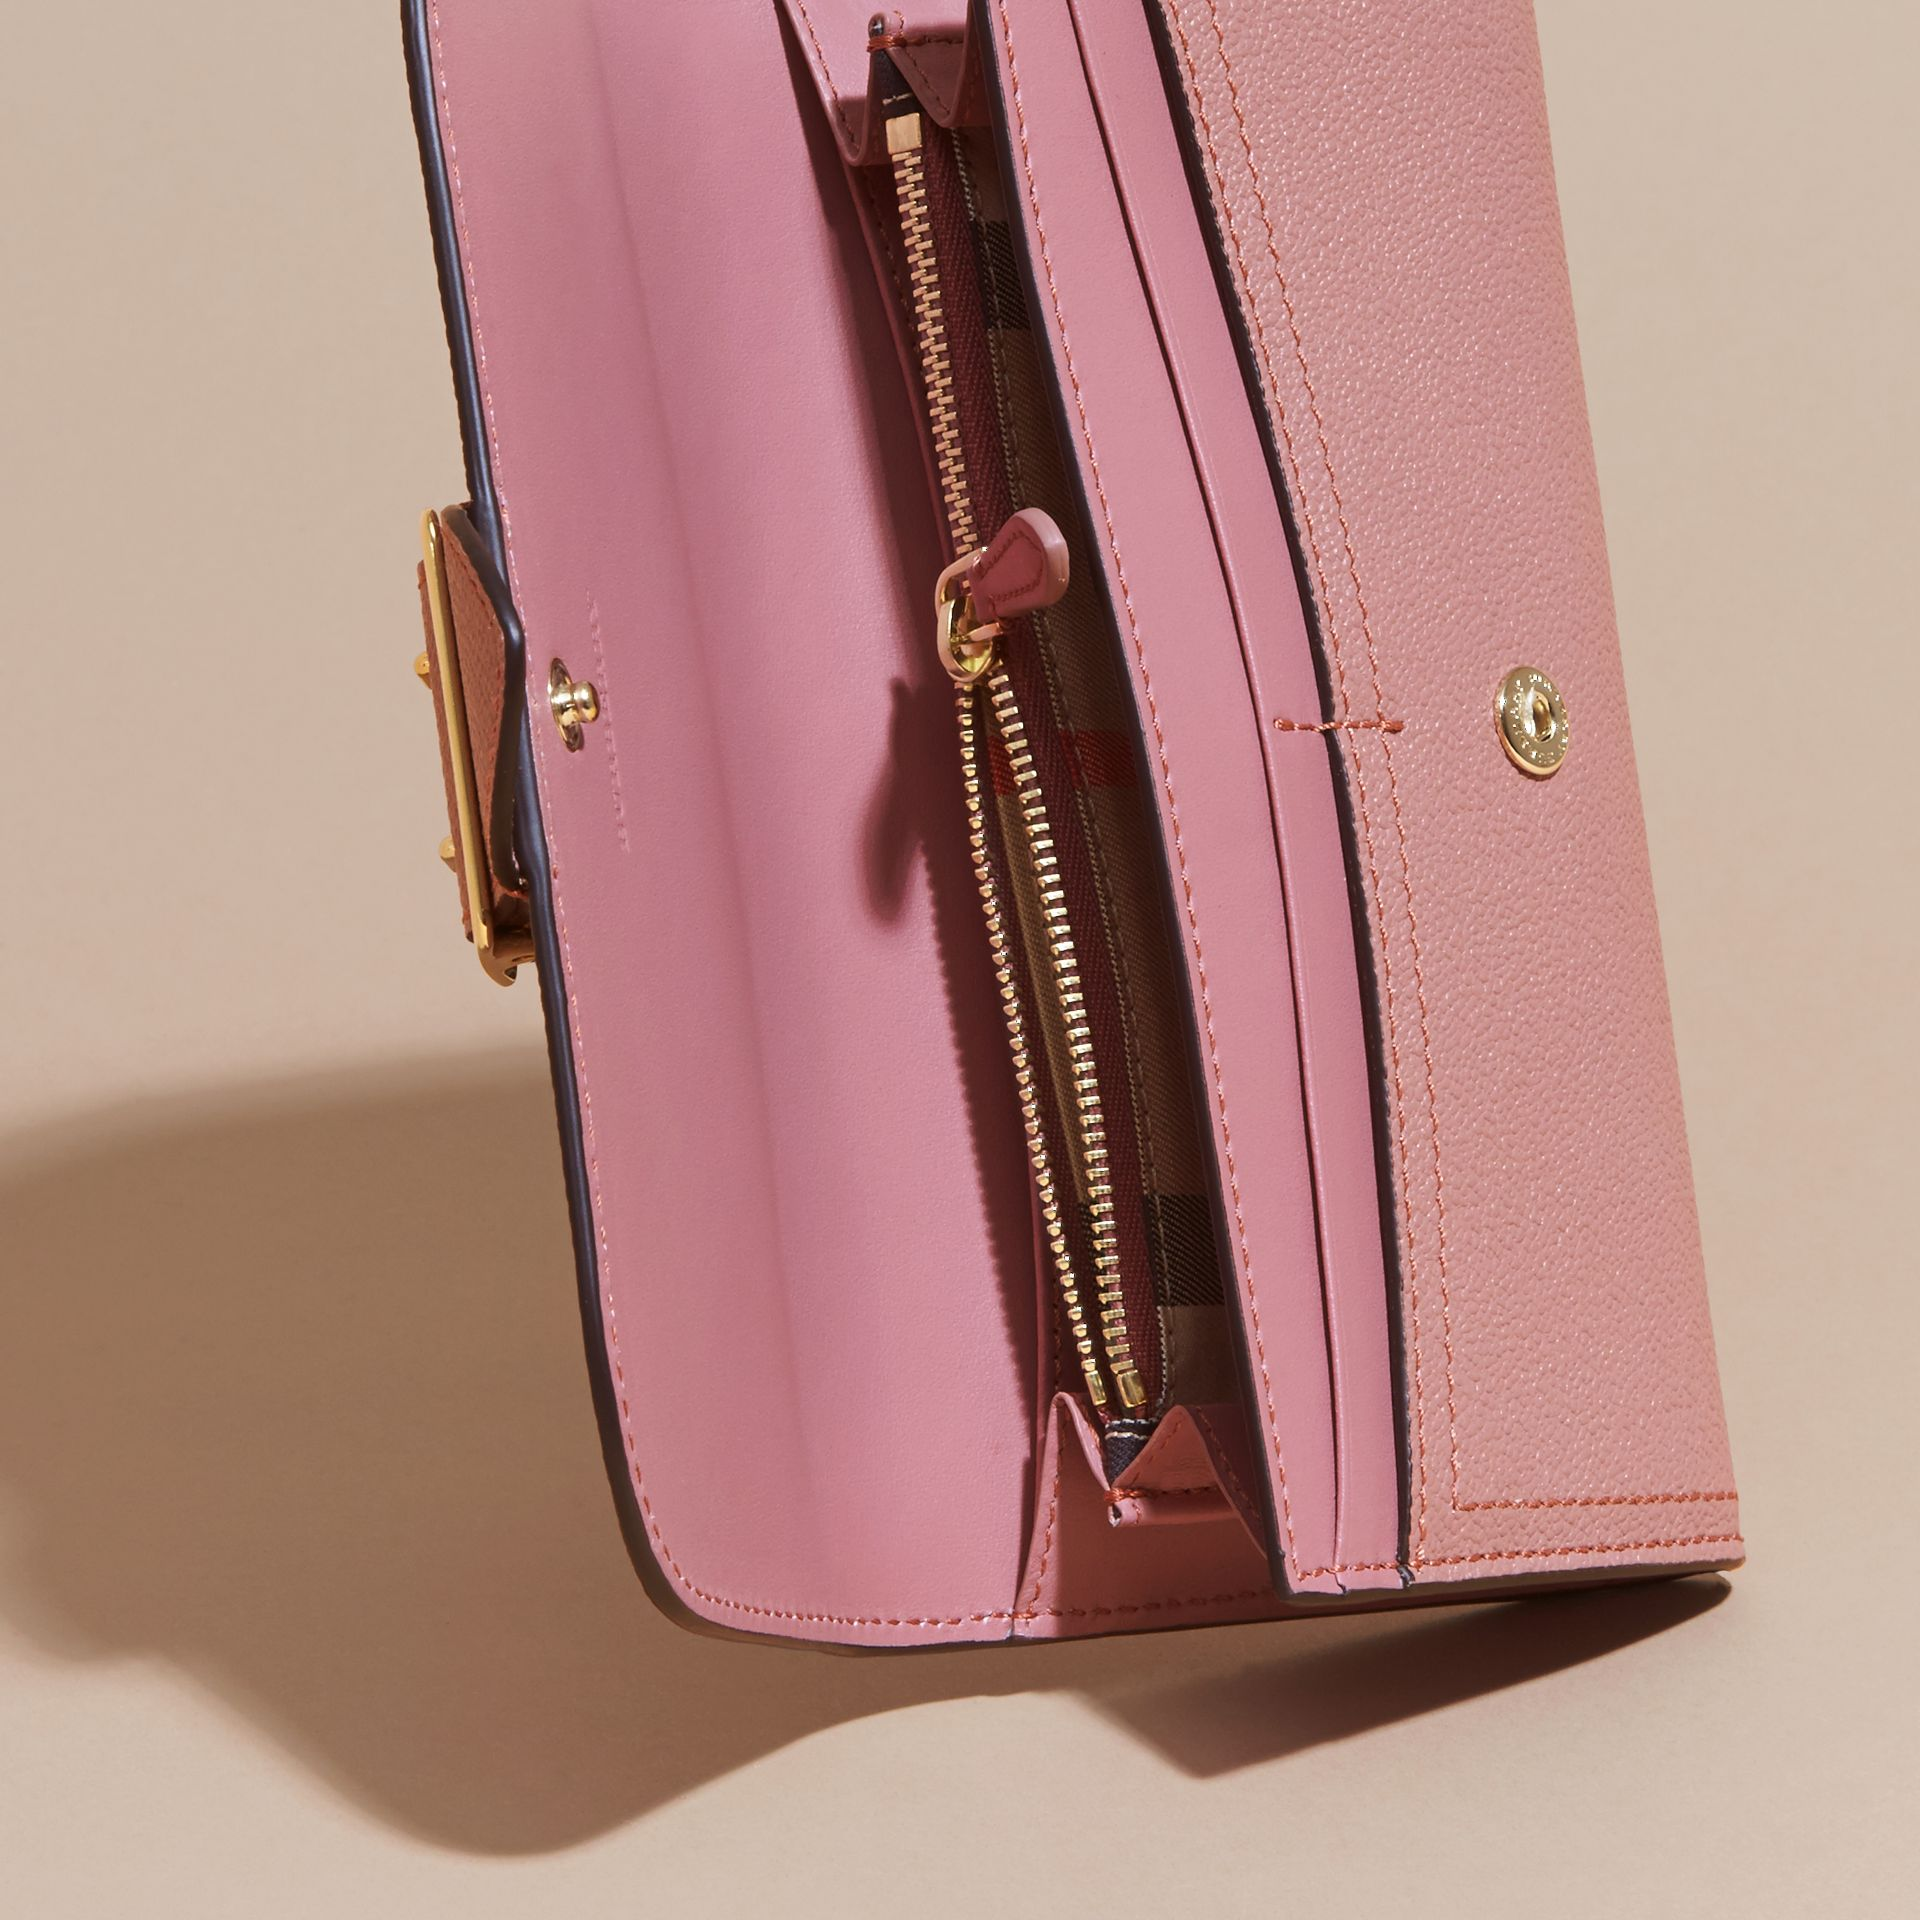 Textured Leather Continental Wallet in Dusty Pink - Women | Burberry Canada - gallery image 5